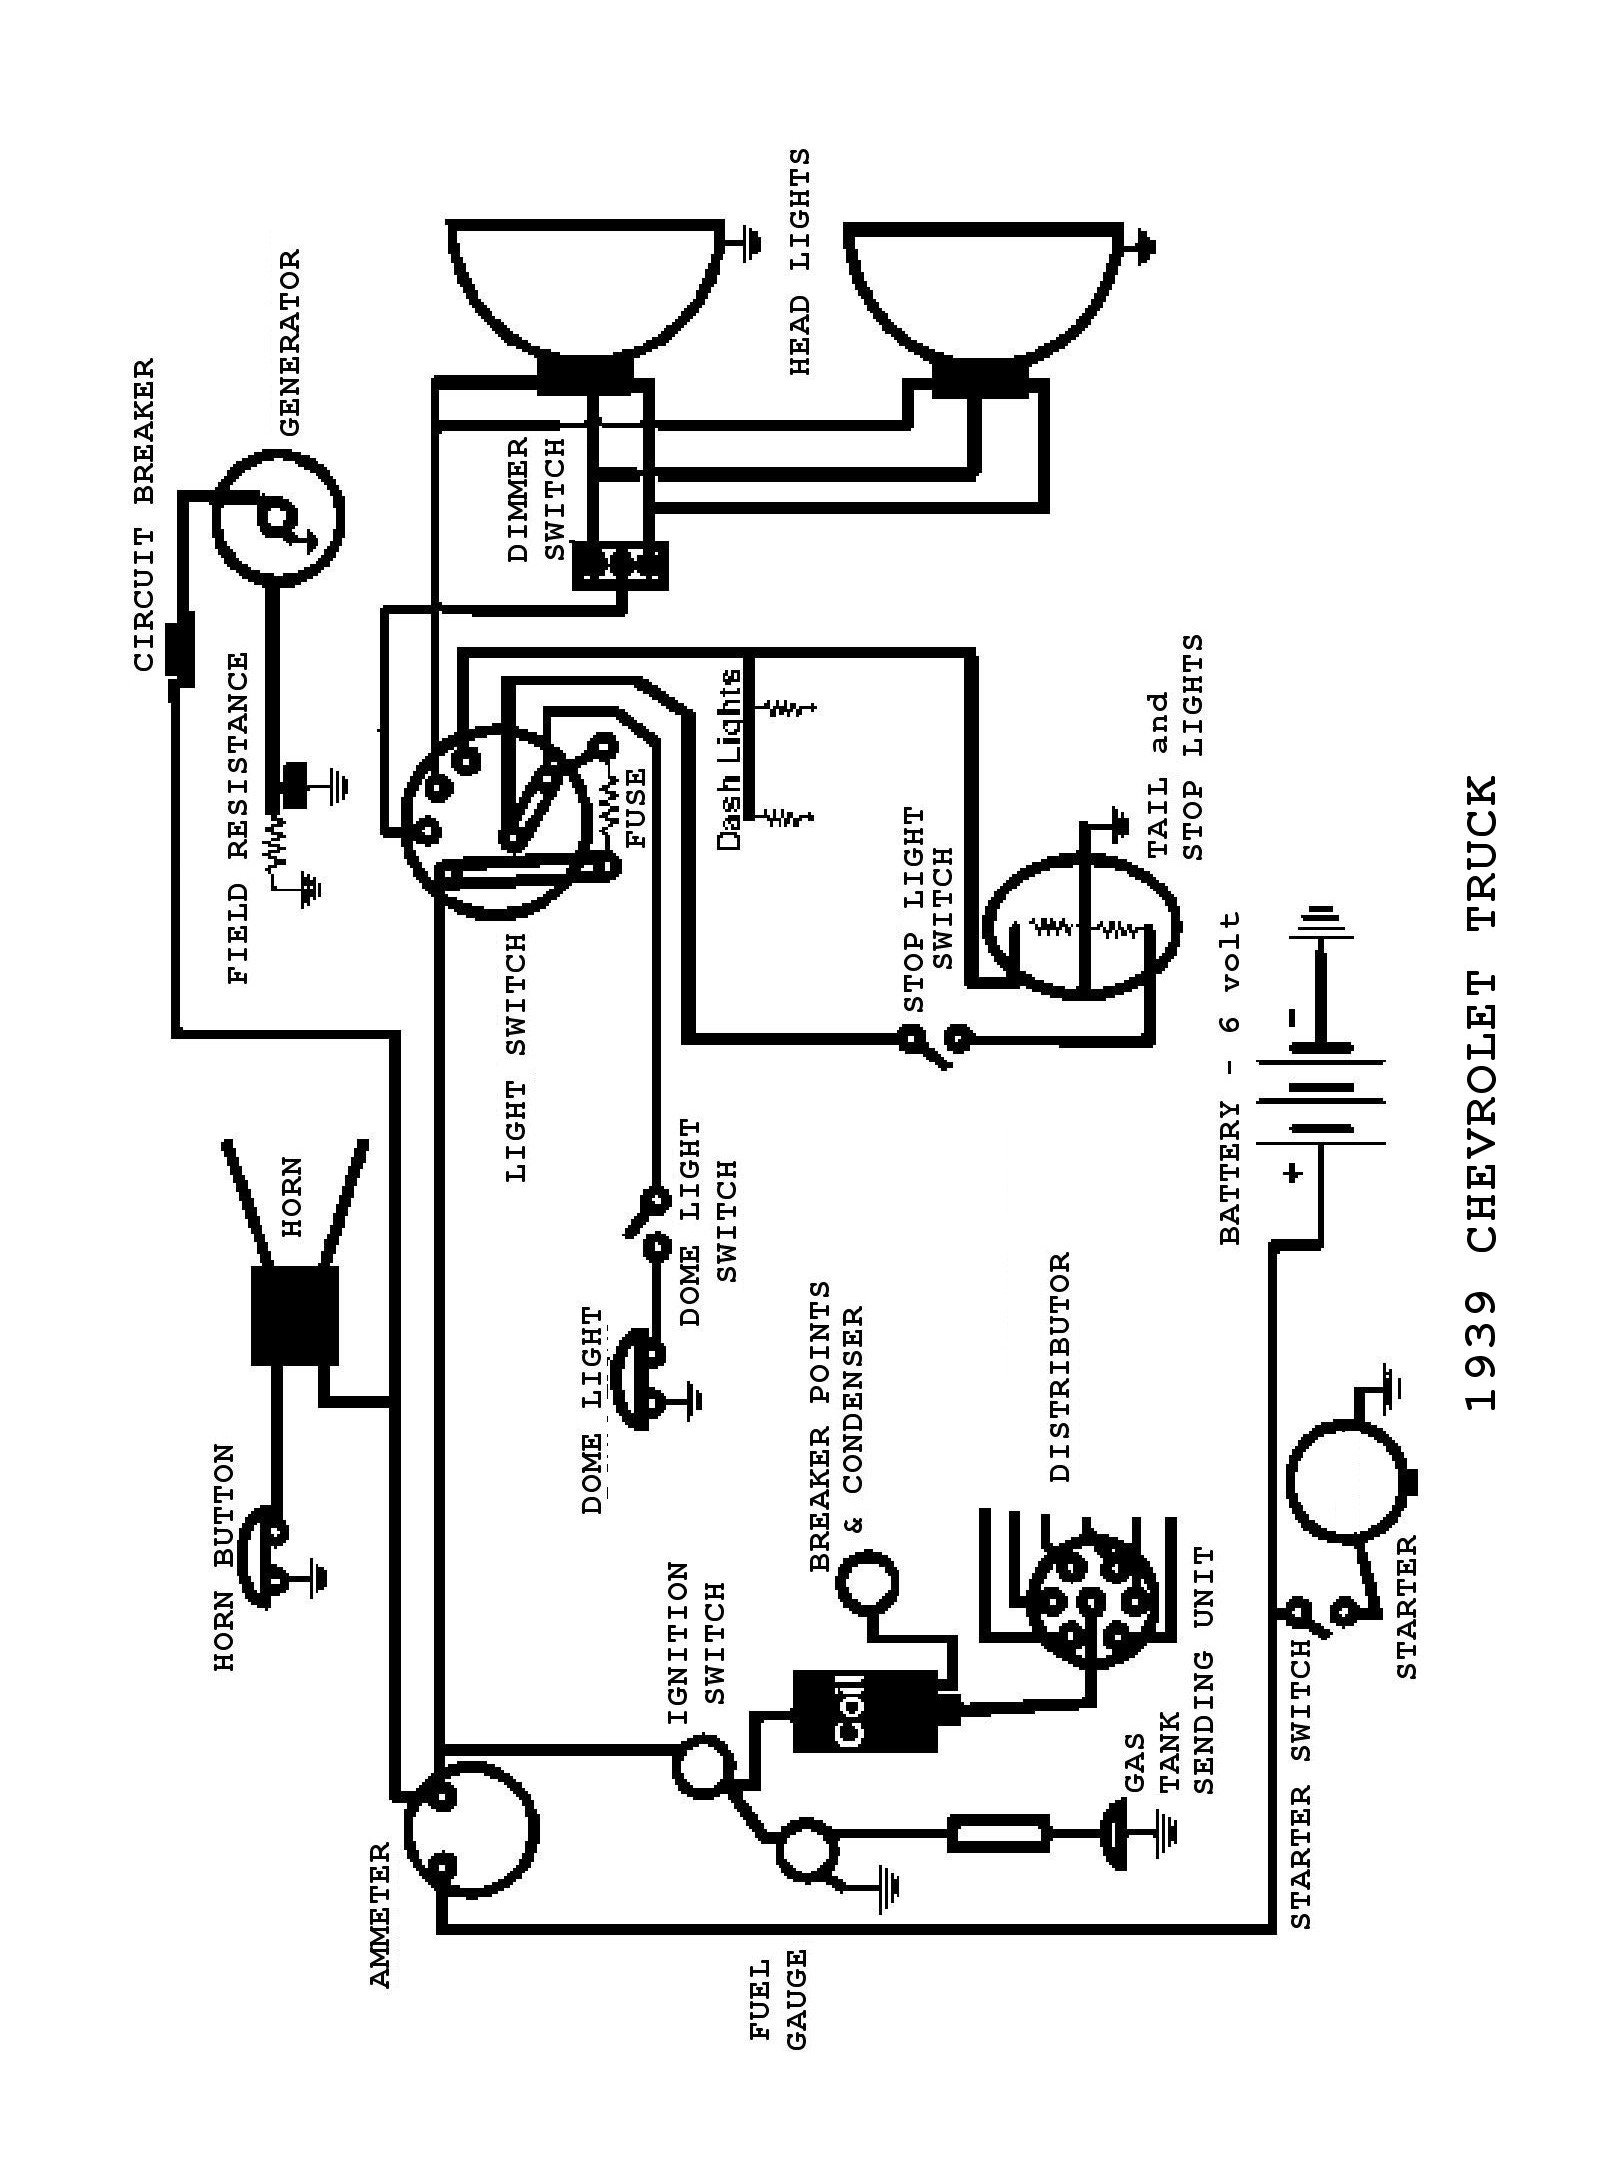 1977 Chevrolet Truck Headlight Switch Wiring Diagram Custom Images Gallery